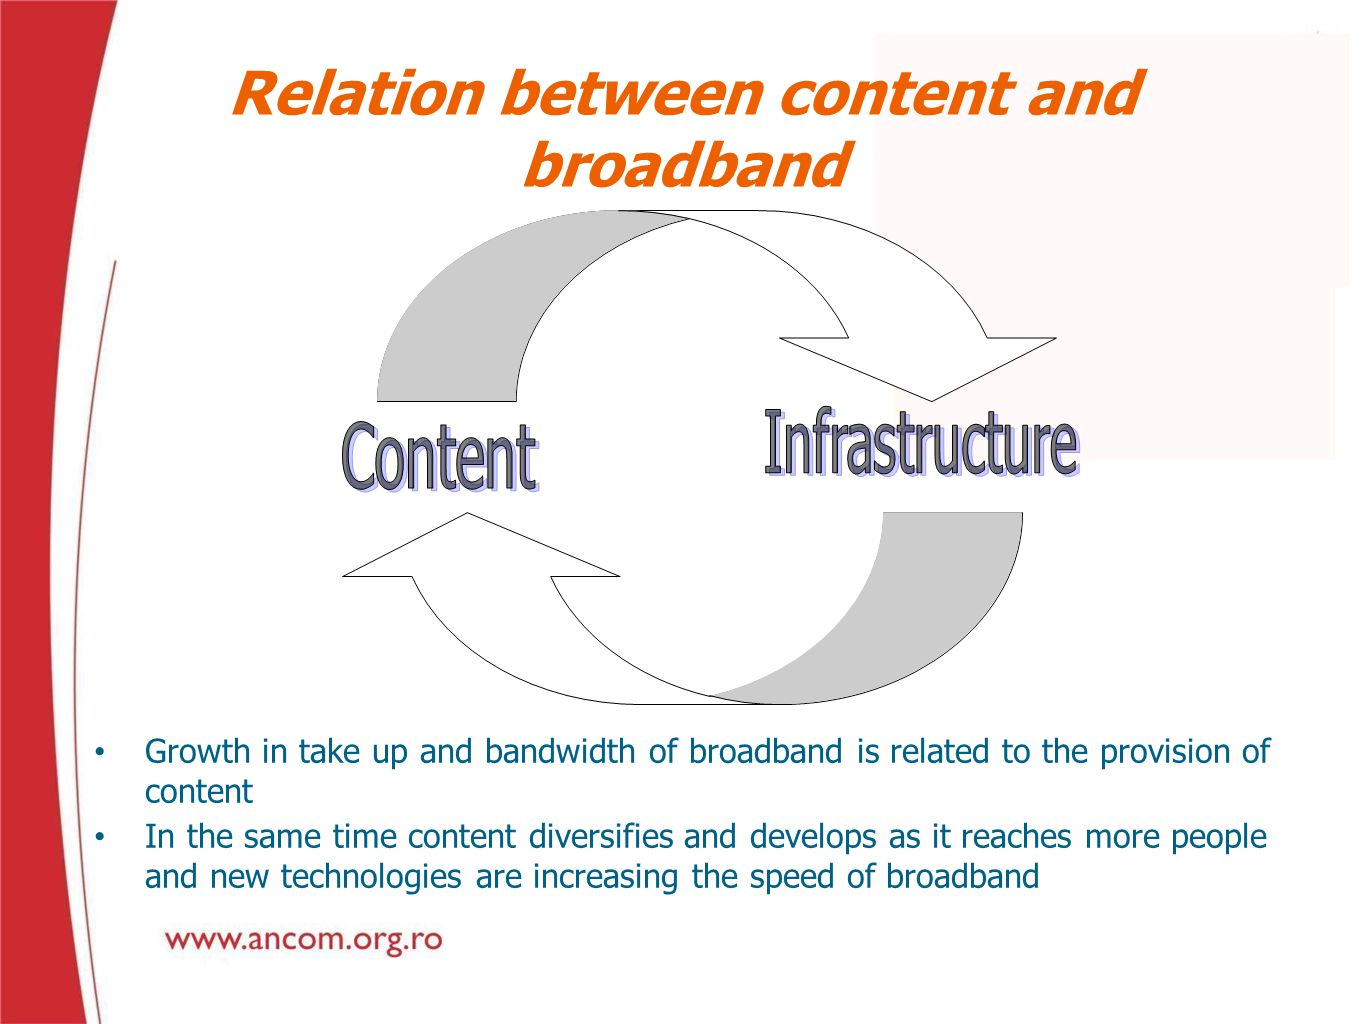 Relation between content and broadband Growth in take up and bandwidth of broadband is related to the provision of content In the same time content di